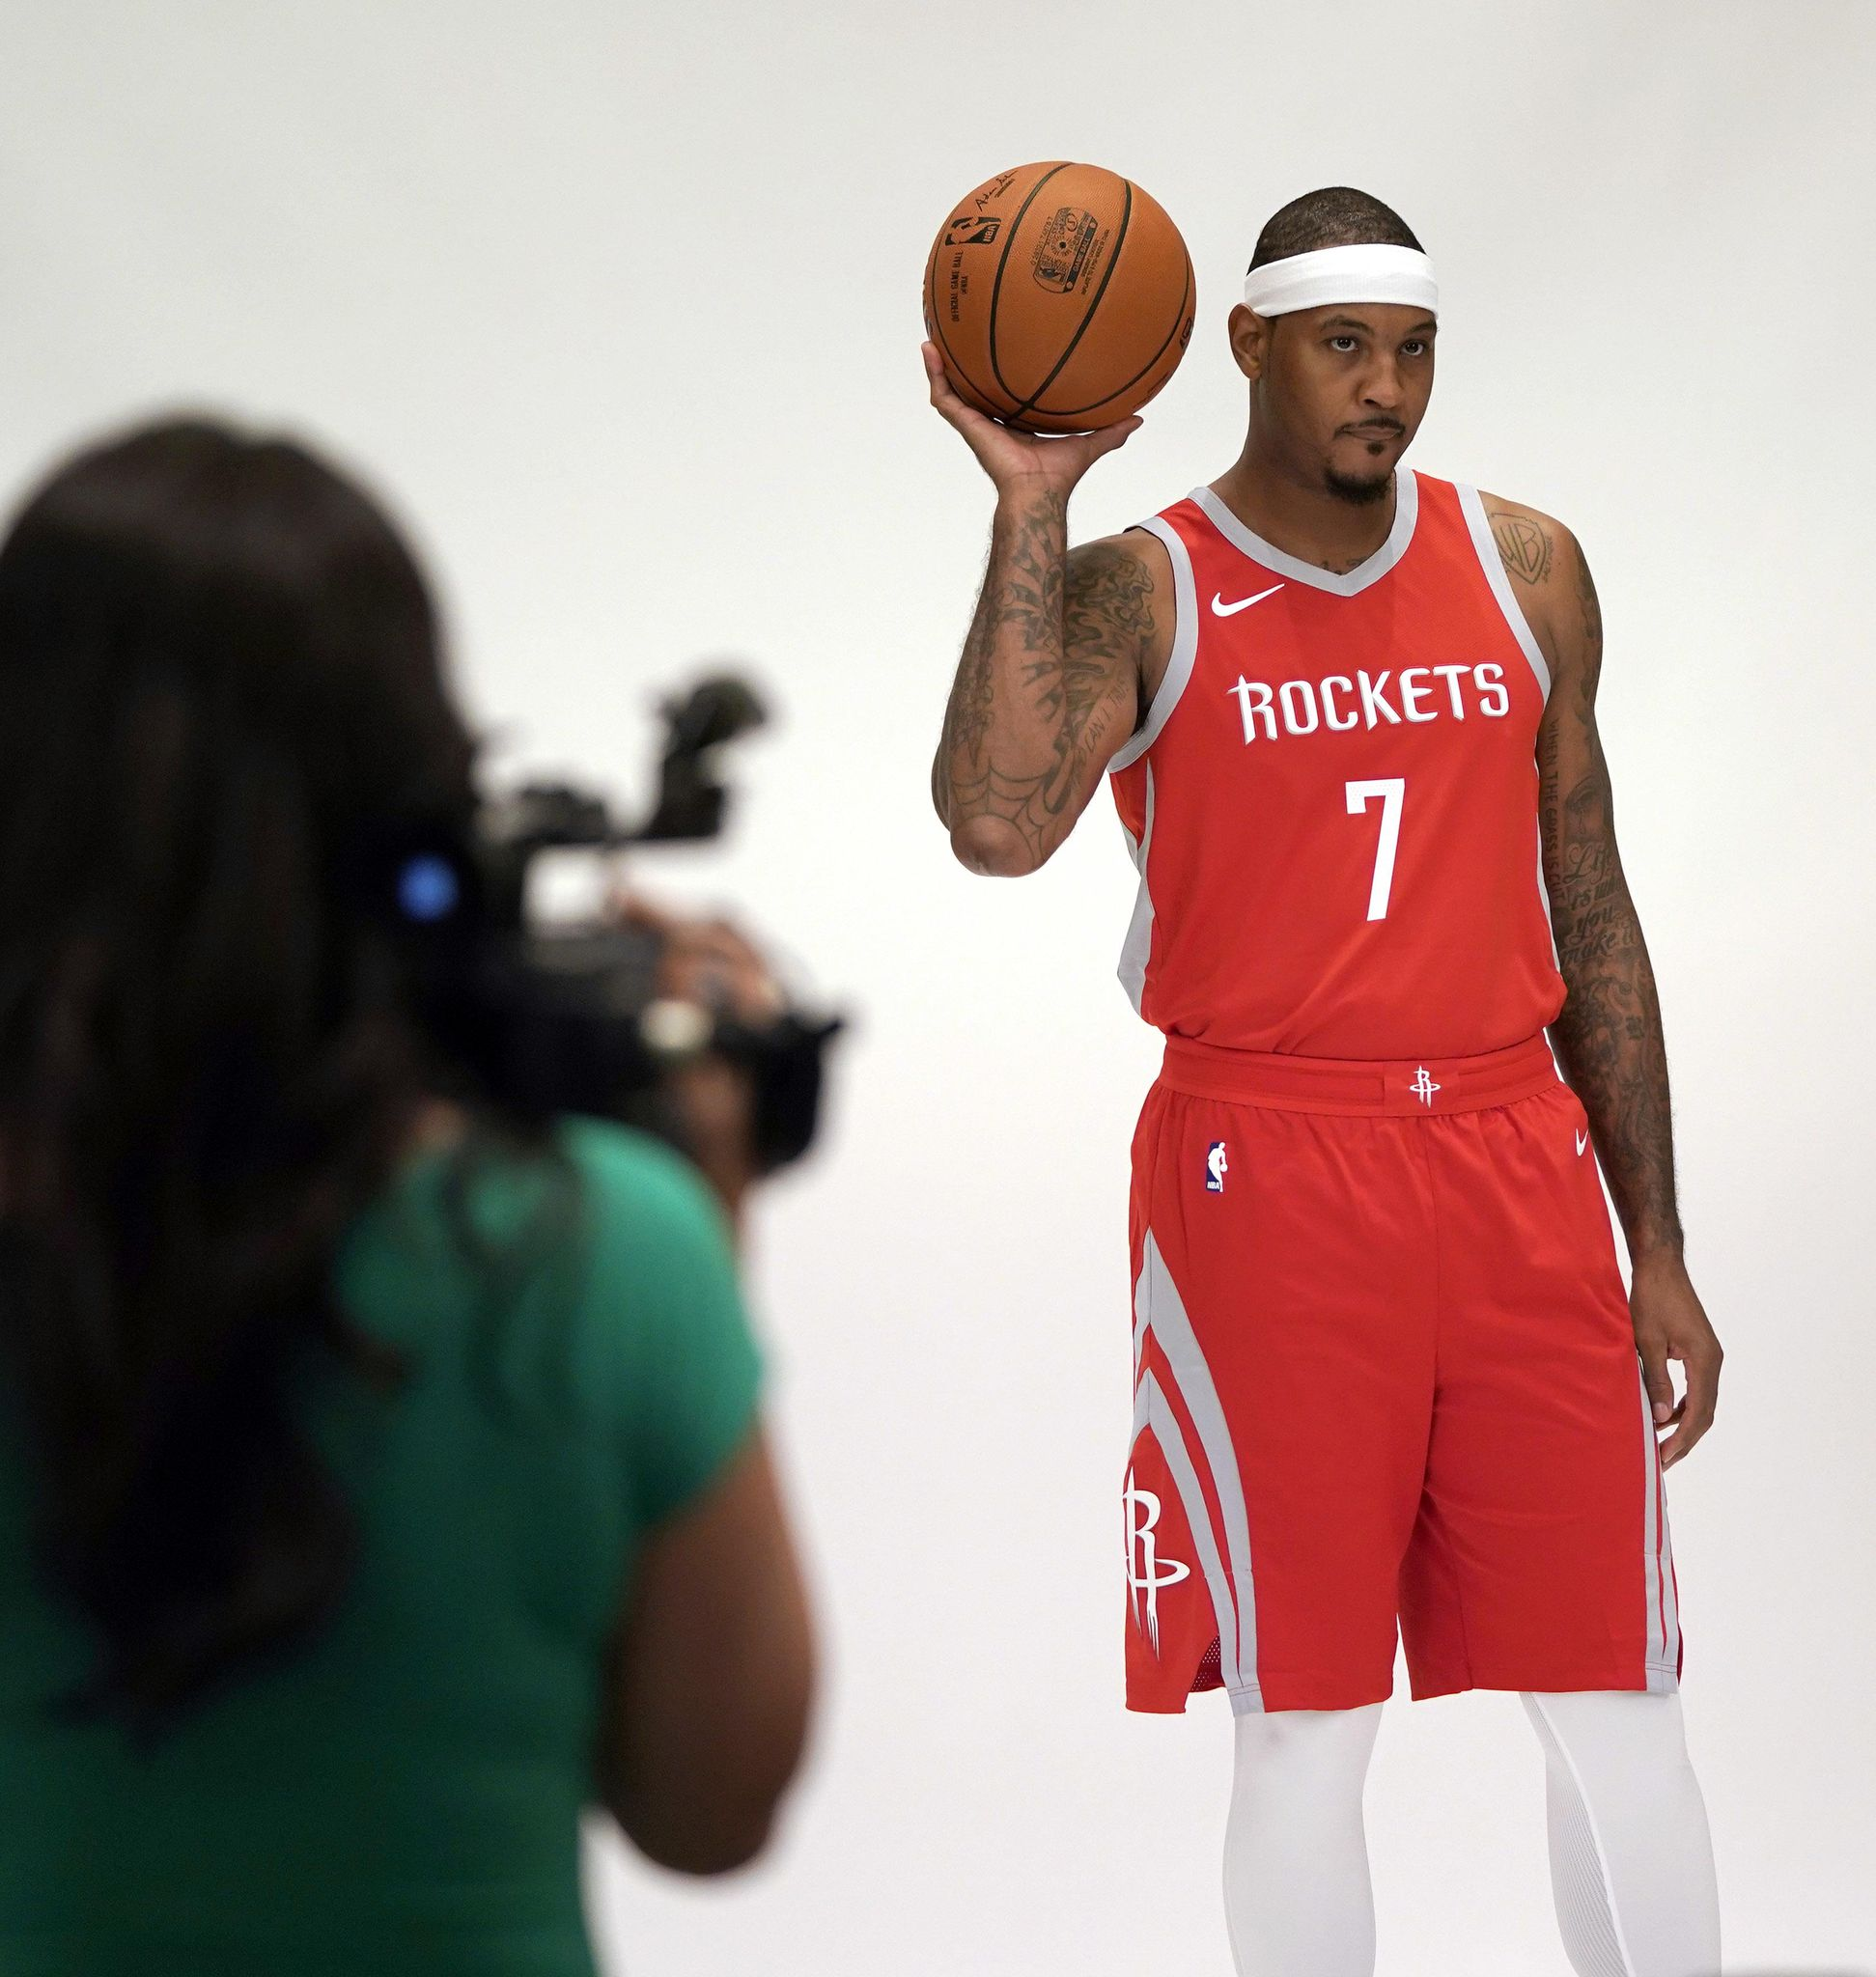 Rockets hope 'Melo can help them to 1st title sinc...